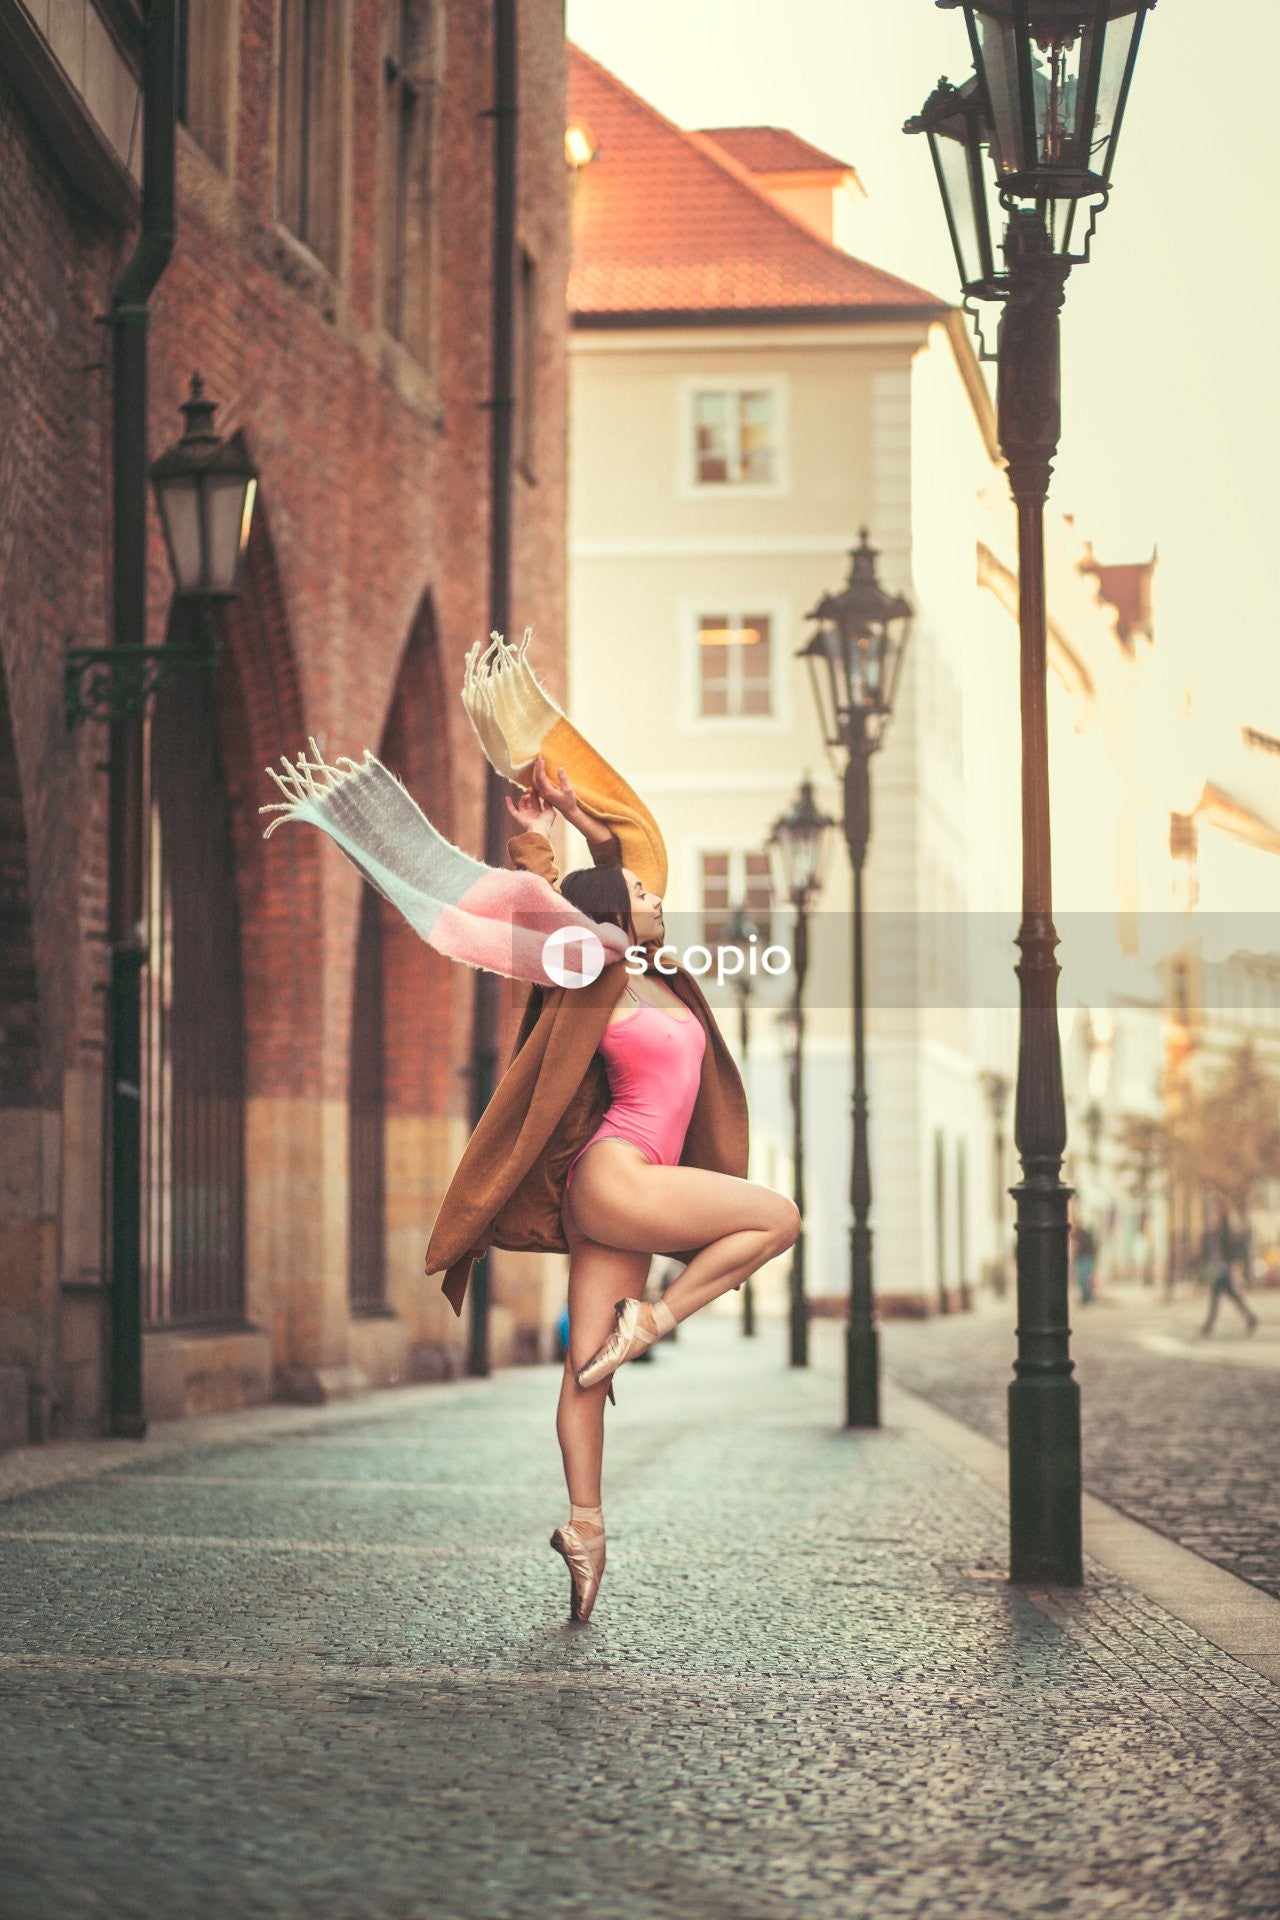 Ballerina in pointe position near street lamp wearing brown coat